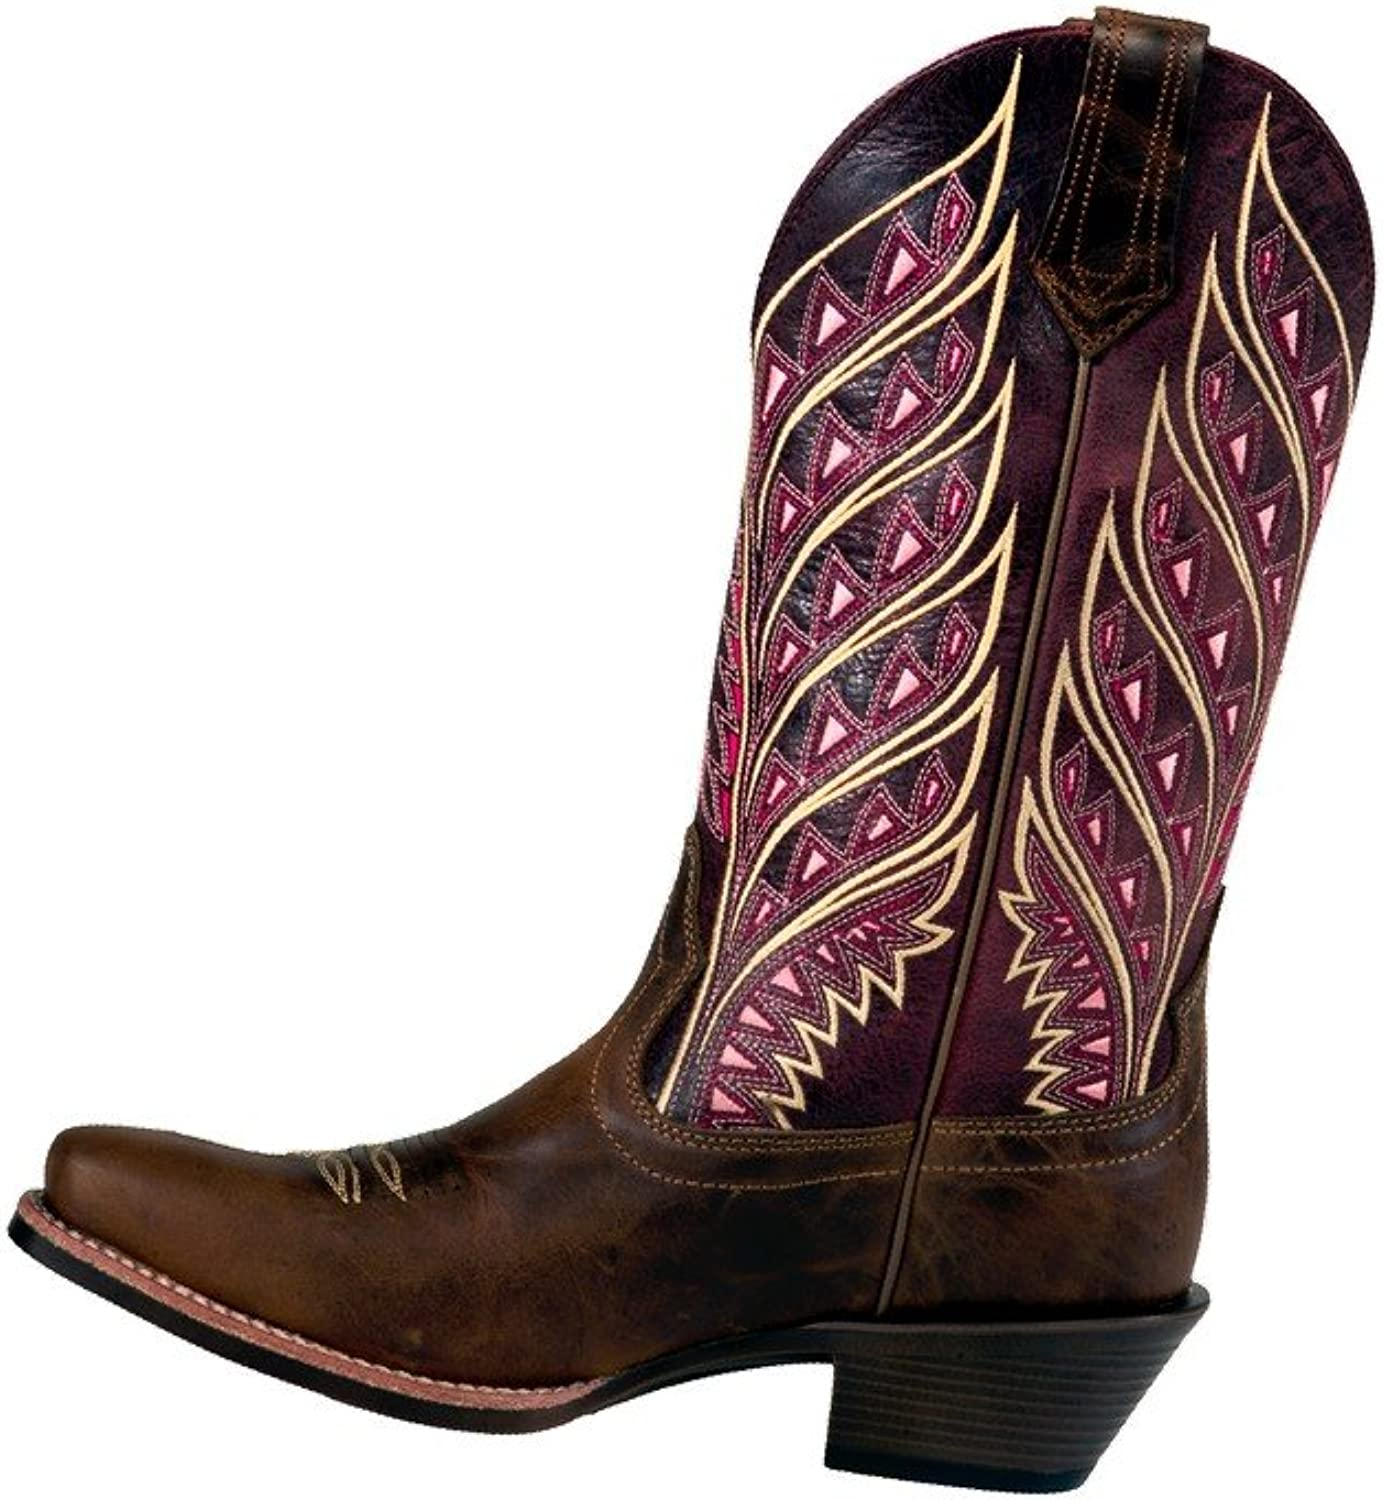 Noble Outfitters Sonora Sq Damen Stiefel